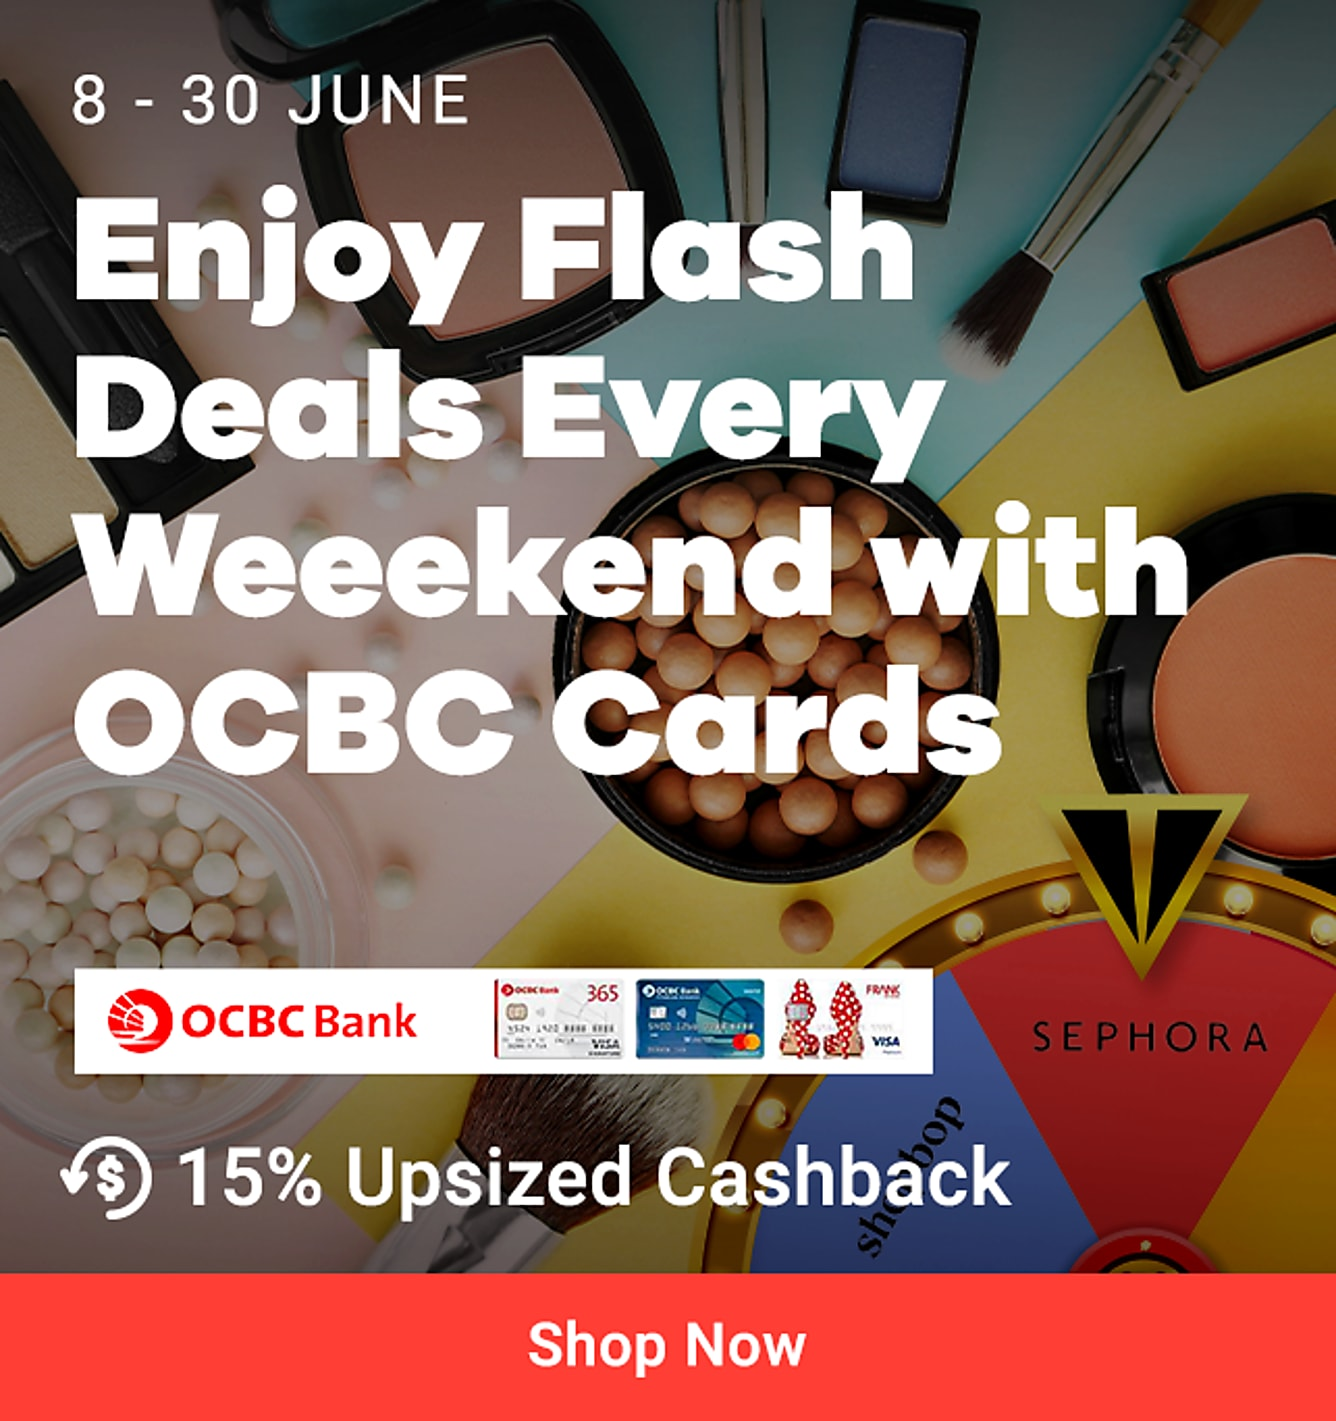 OCBC flash weekends sephora